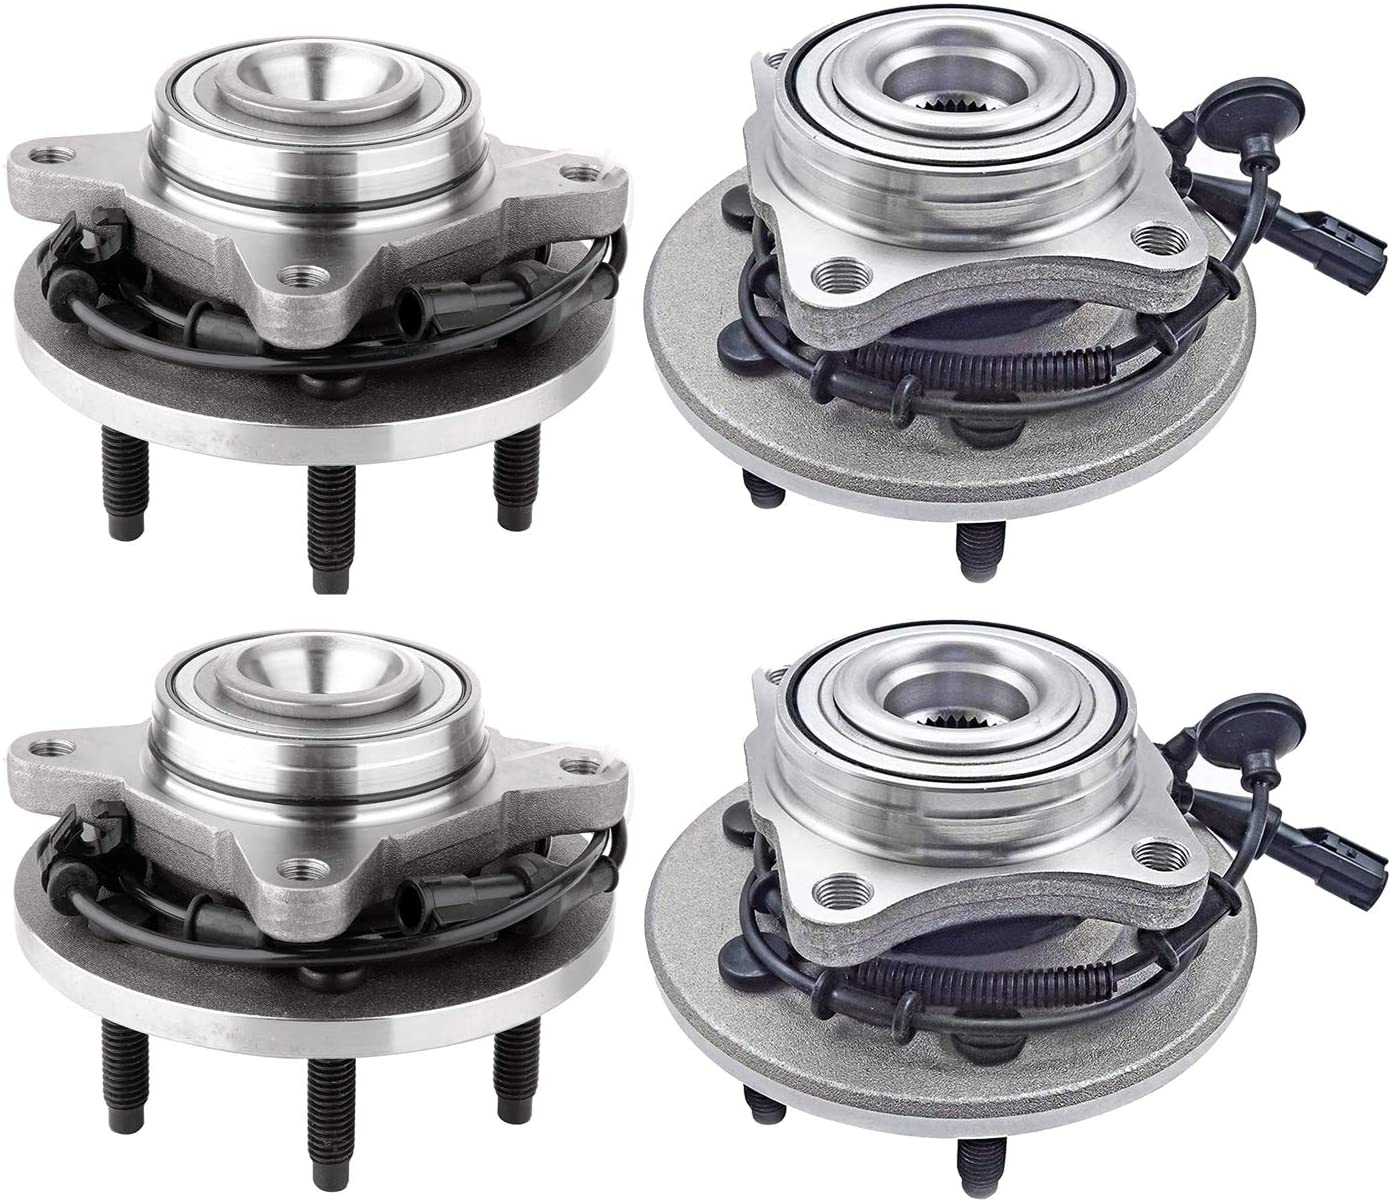 Bodeman - (4) Front and Rear Driver Passenger Side Wheel Hub and Bearing Assembly for 2003 2004 2005 2006 Ford Expedition and Lincoln Navigator 2WD